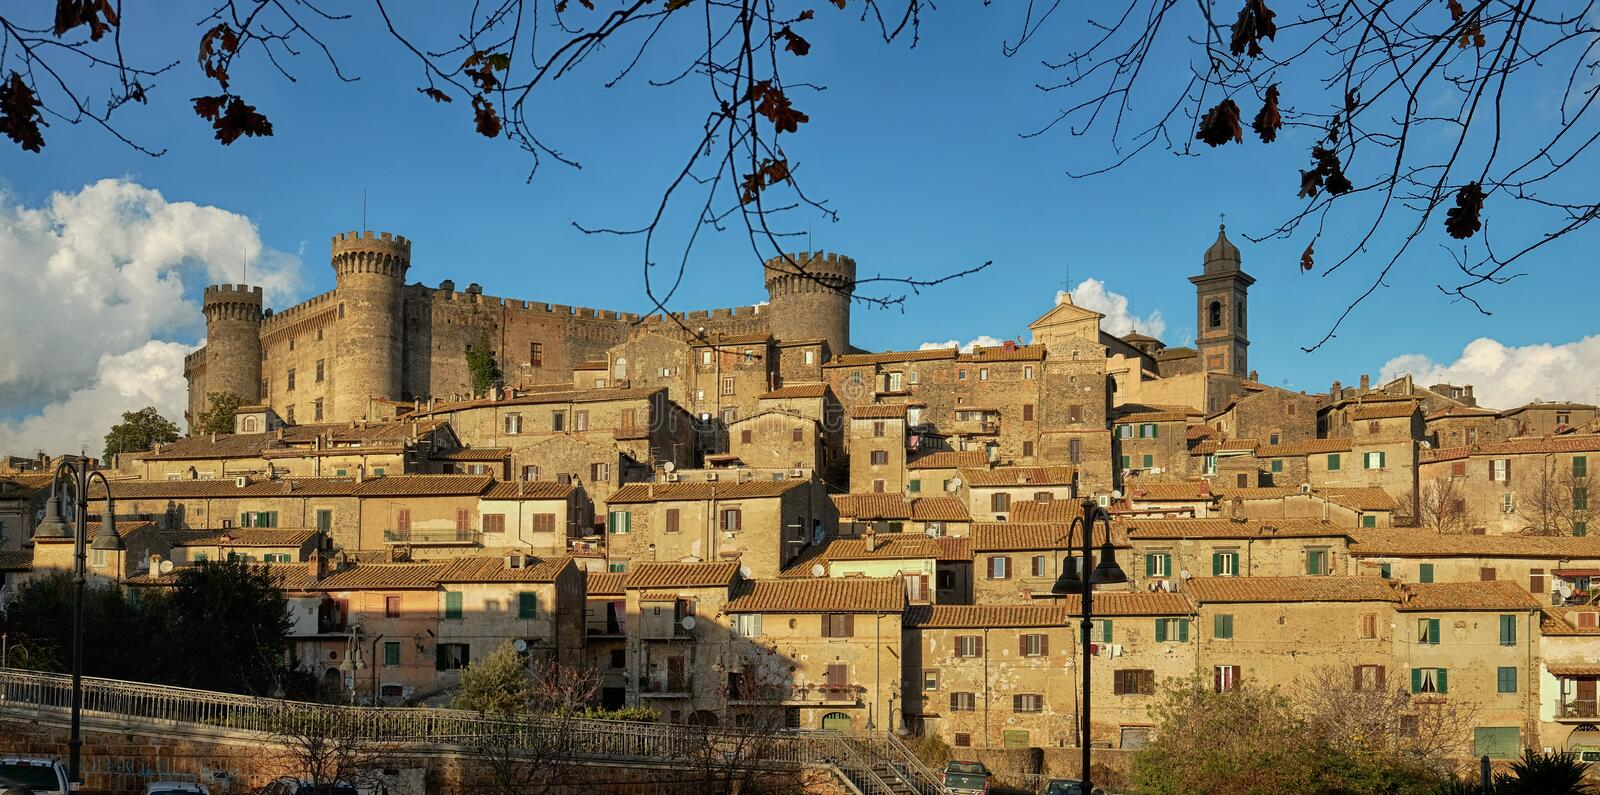 View of the ancient town of Bracciano near Rome, Italy. Ancient town of Bracciano dominated by the medieval castle of the Orsini-Odescalchi family